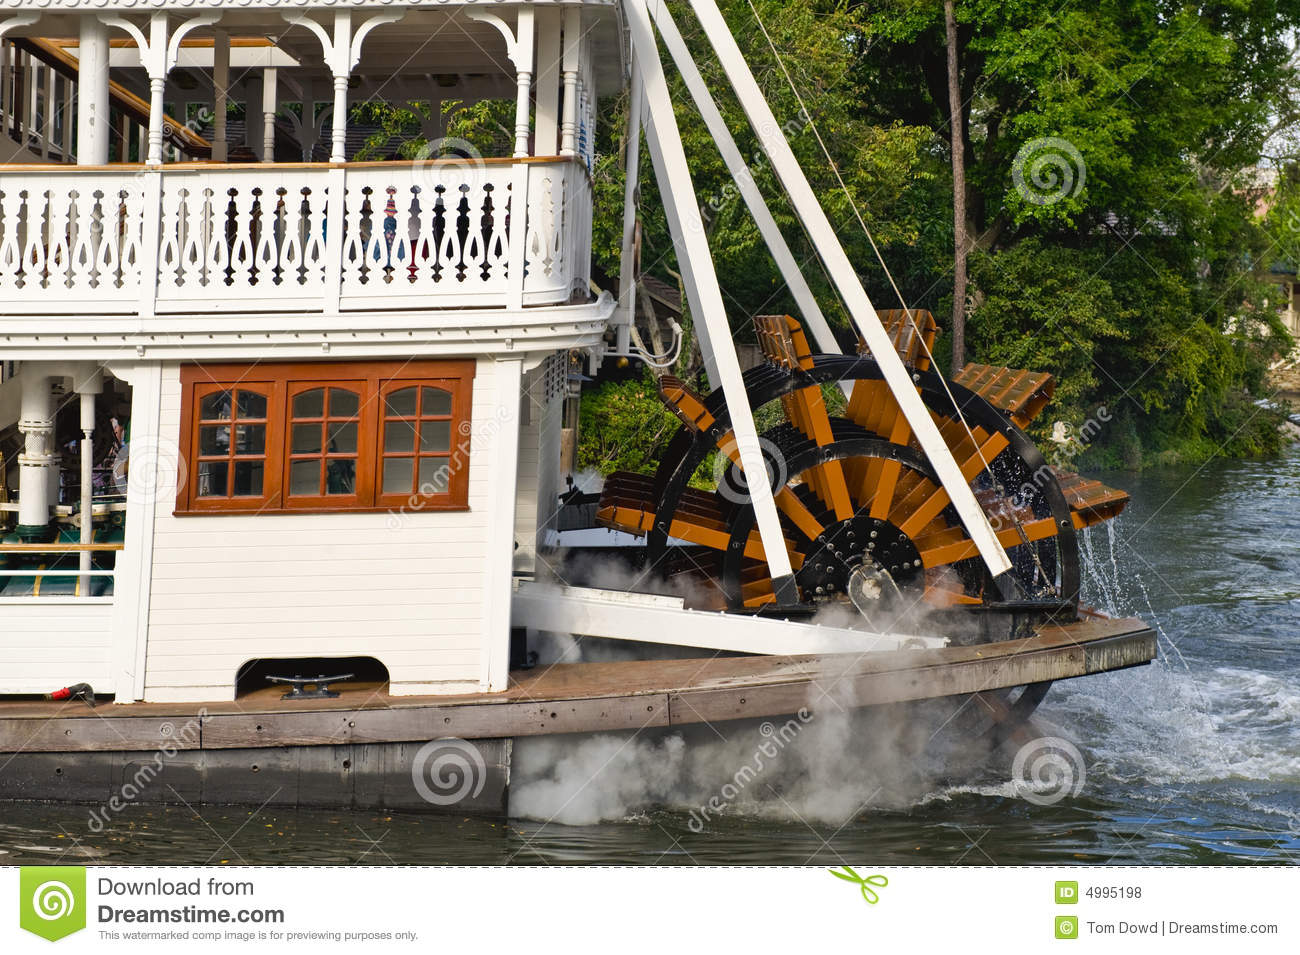 Paddle Wheel River Boat Royalty Free Stock Photos - Image: 4995198